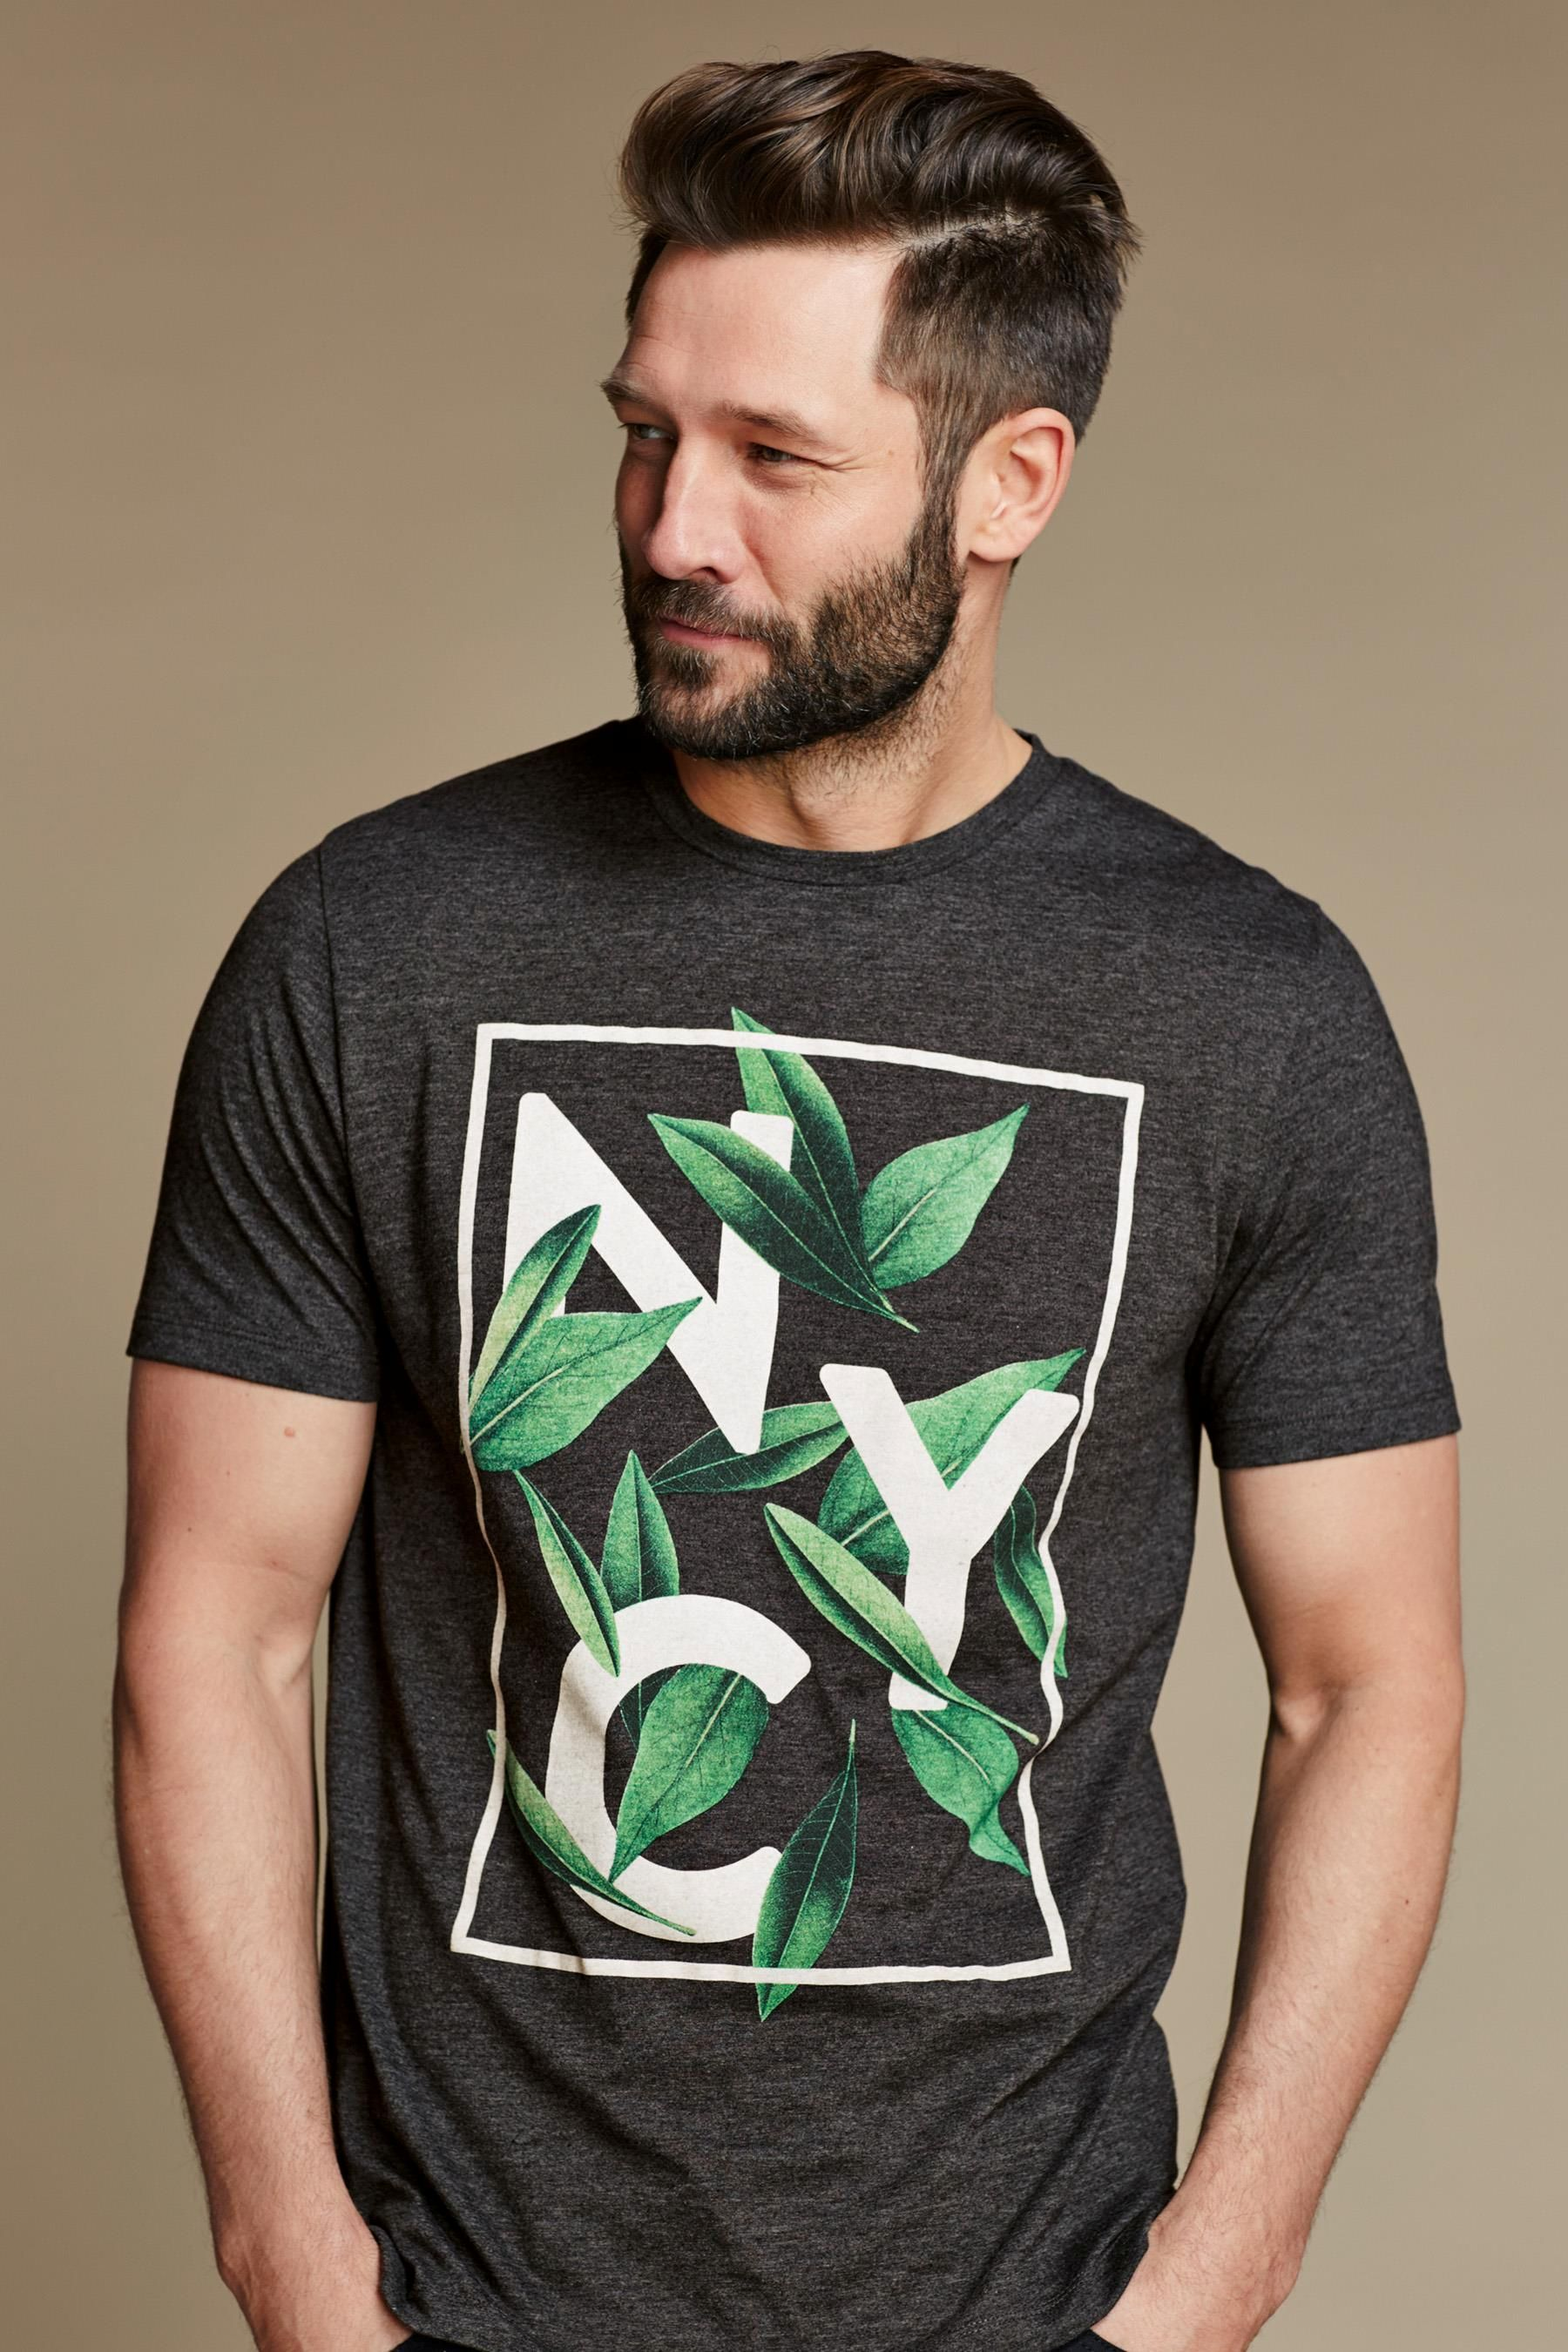 Design t shirt graphics online - Buy Charcoal Nyc Leaf T Shirt From The Next Uk Online Shop Good